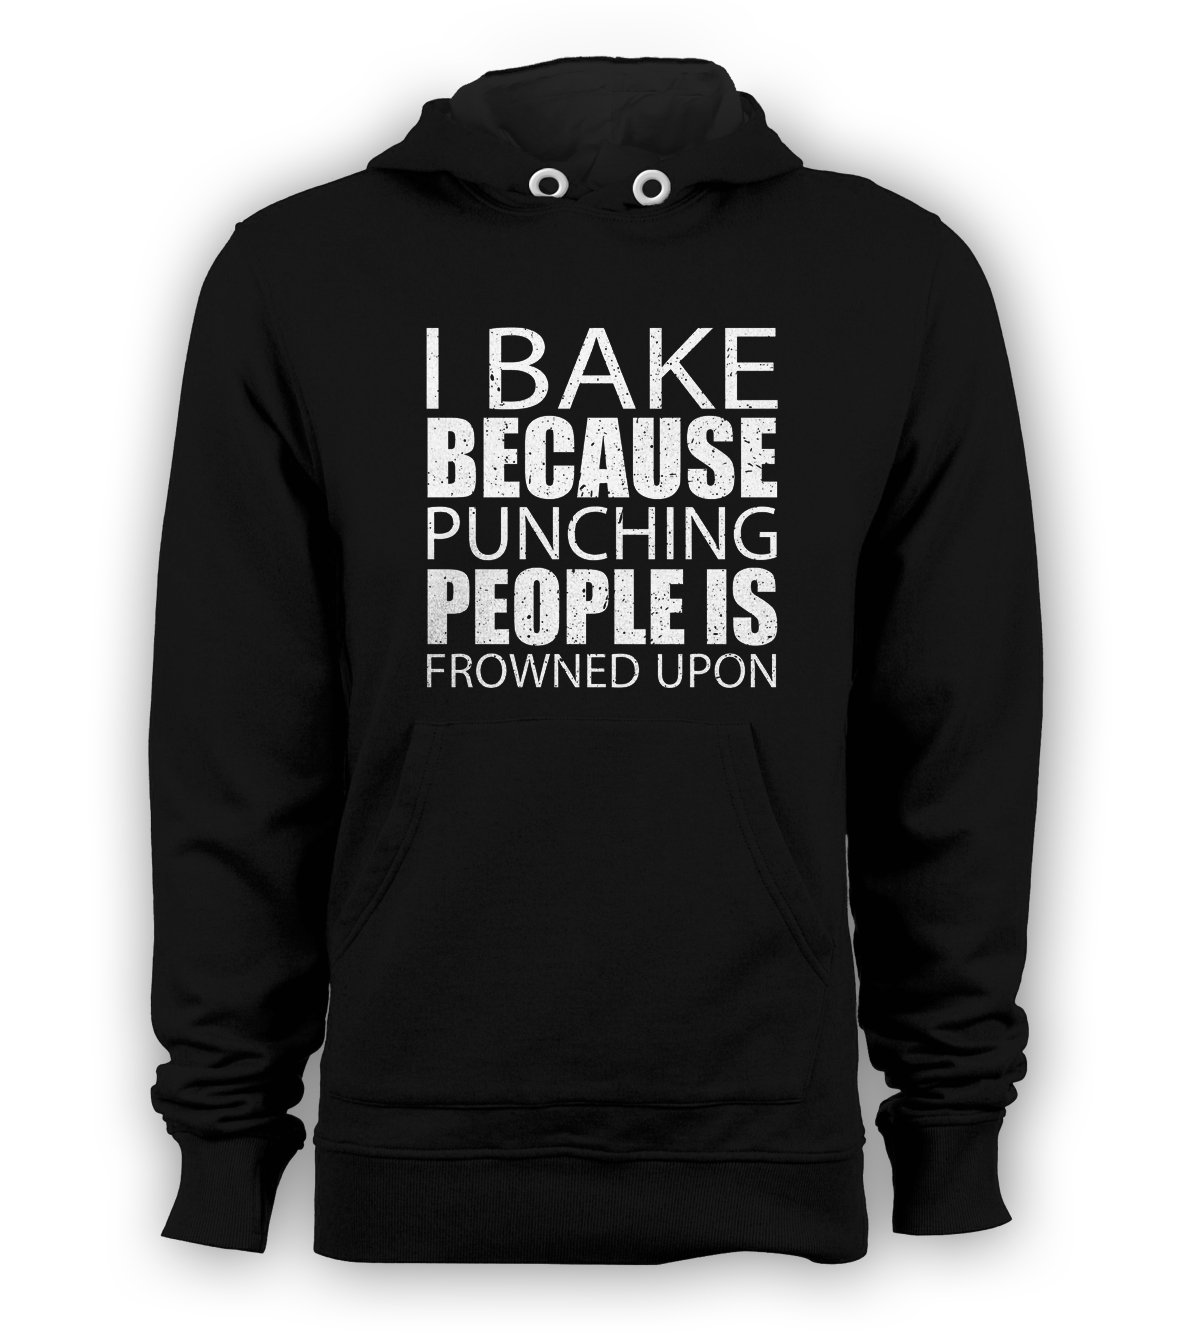 I Bake Because Punching People Is Frowned Upon Pullover Hoodie Men Sweatshirts